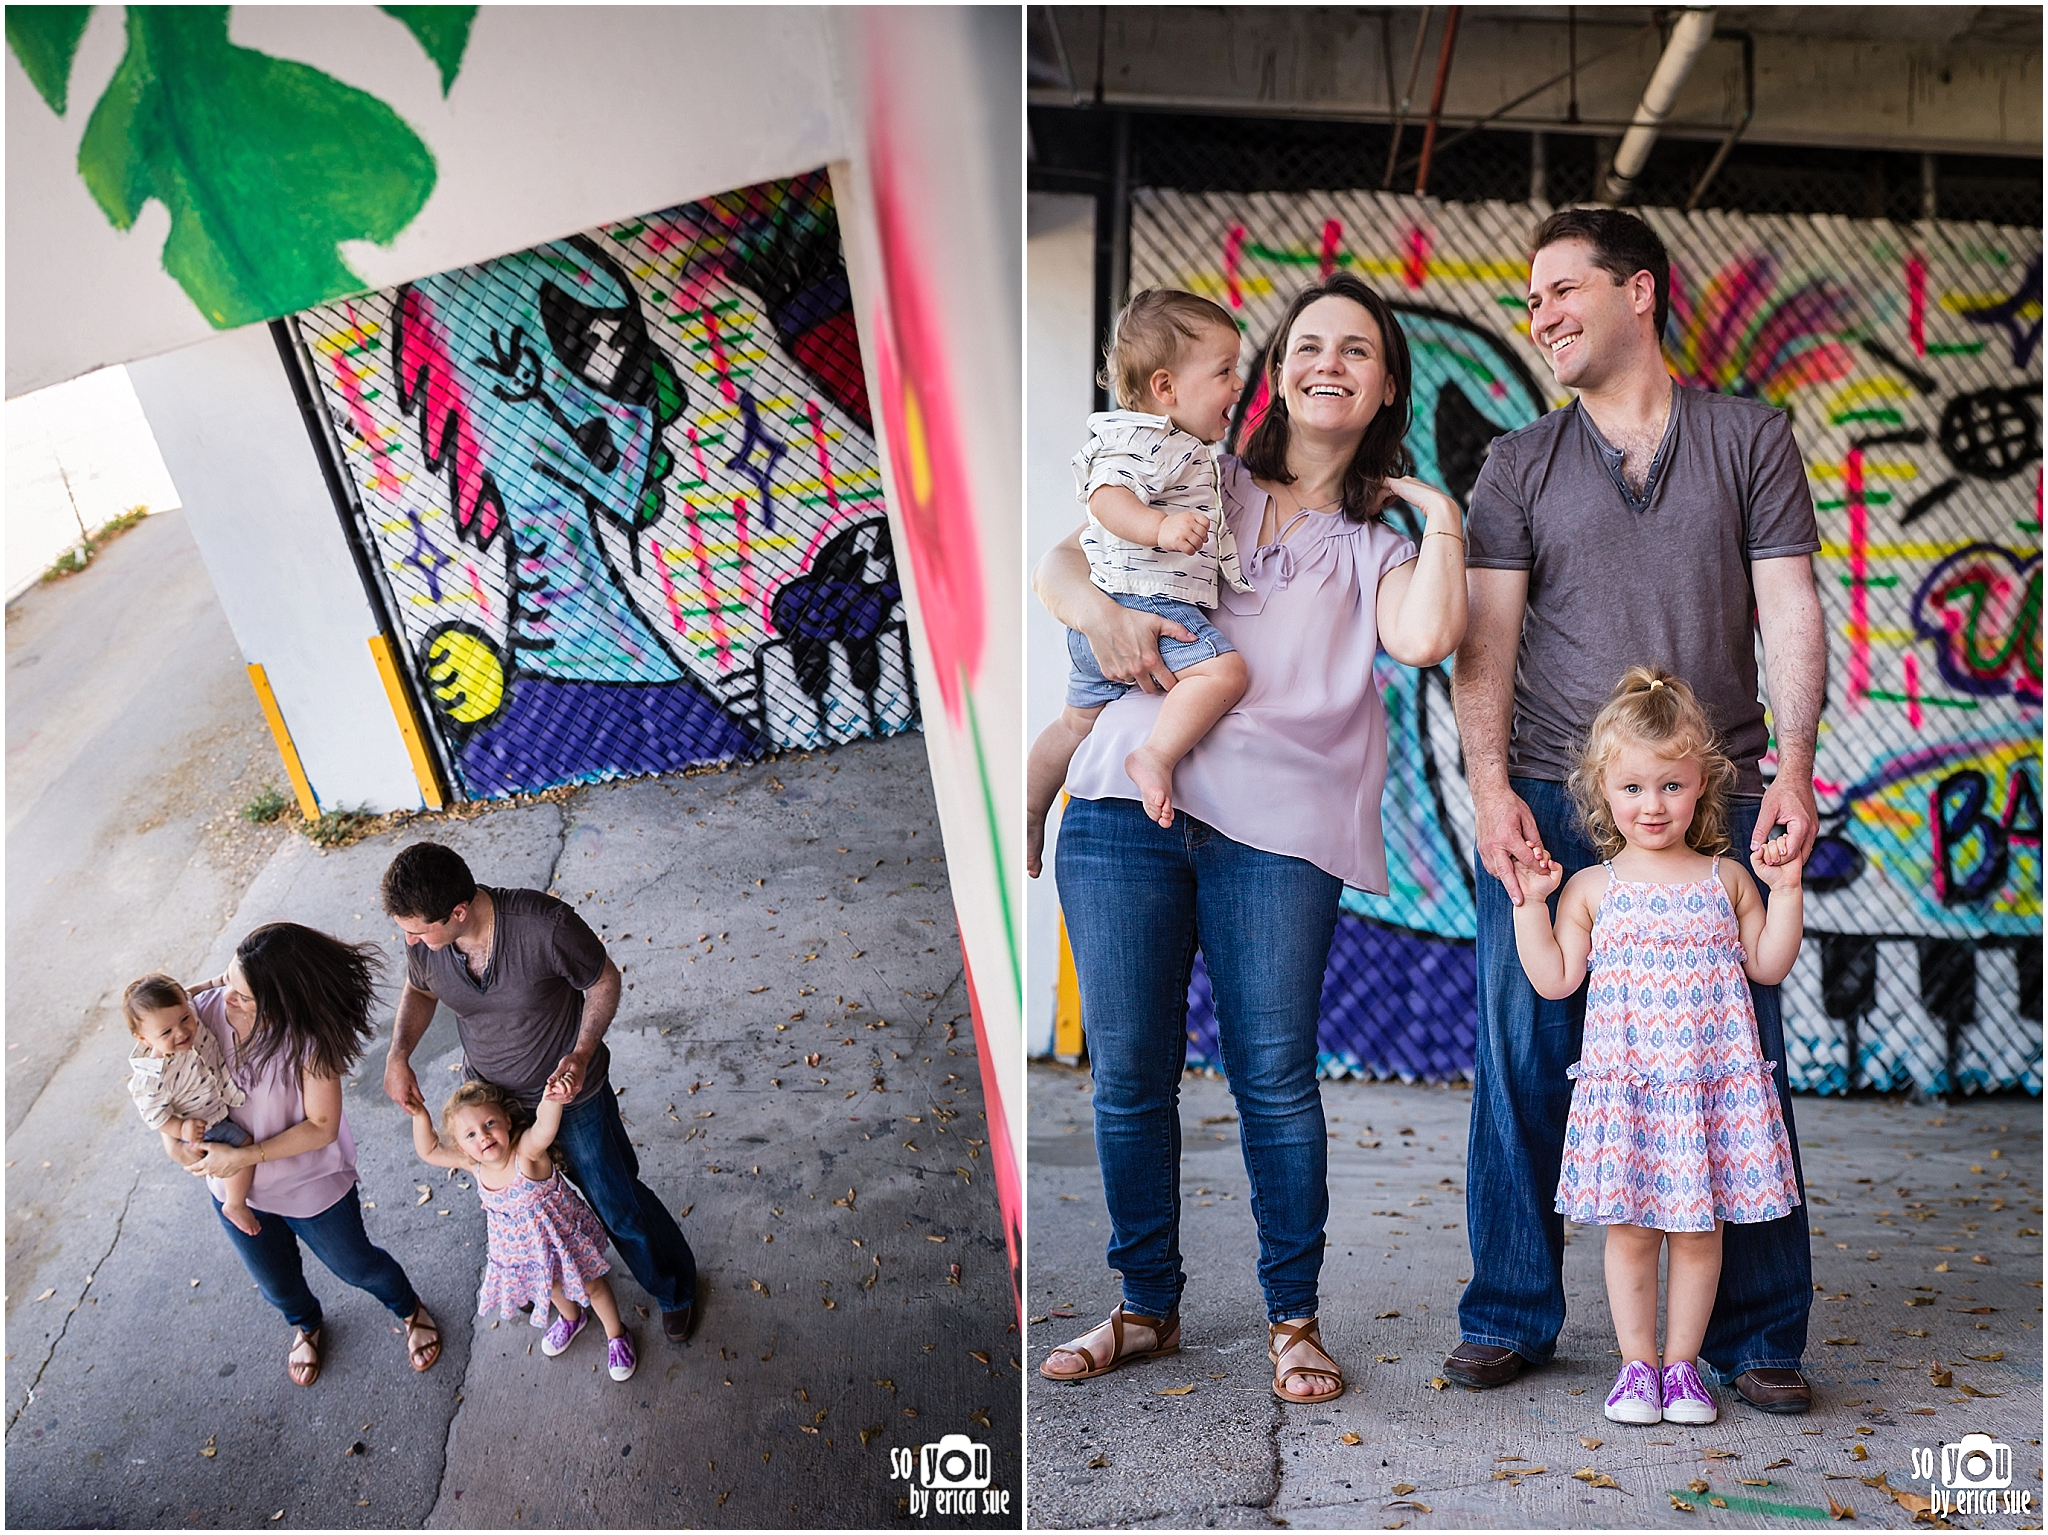 lifestyle-family-photography-miami-fl-so-you-by-erica-sue-2545 (2).jpg